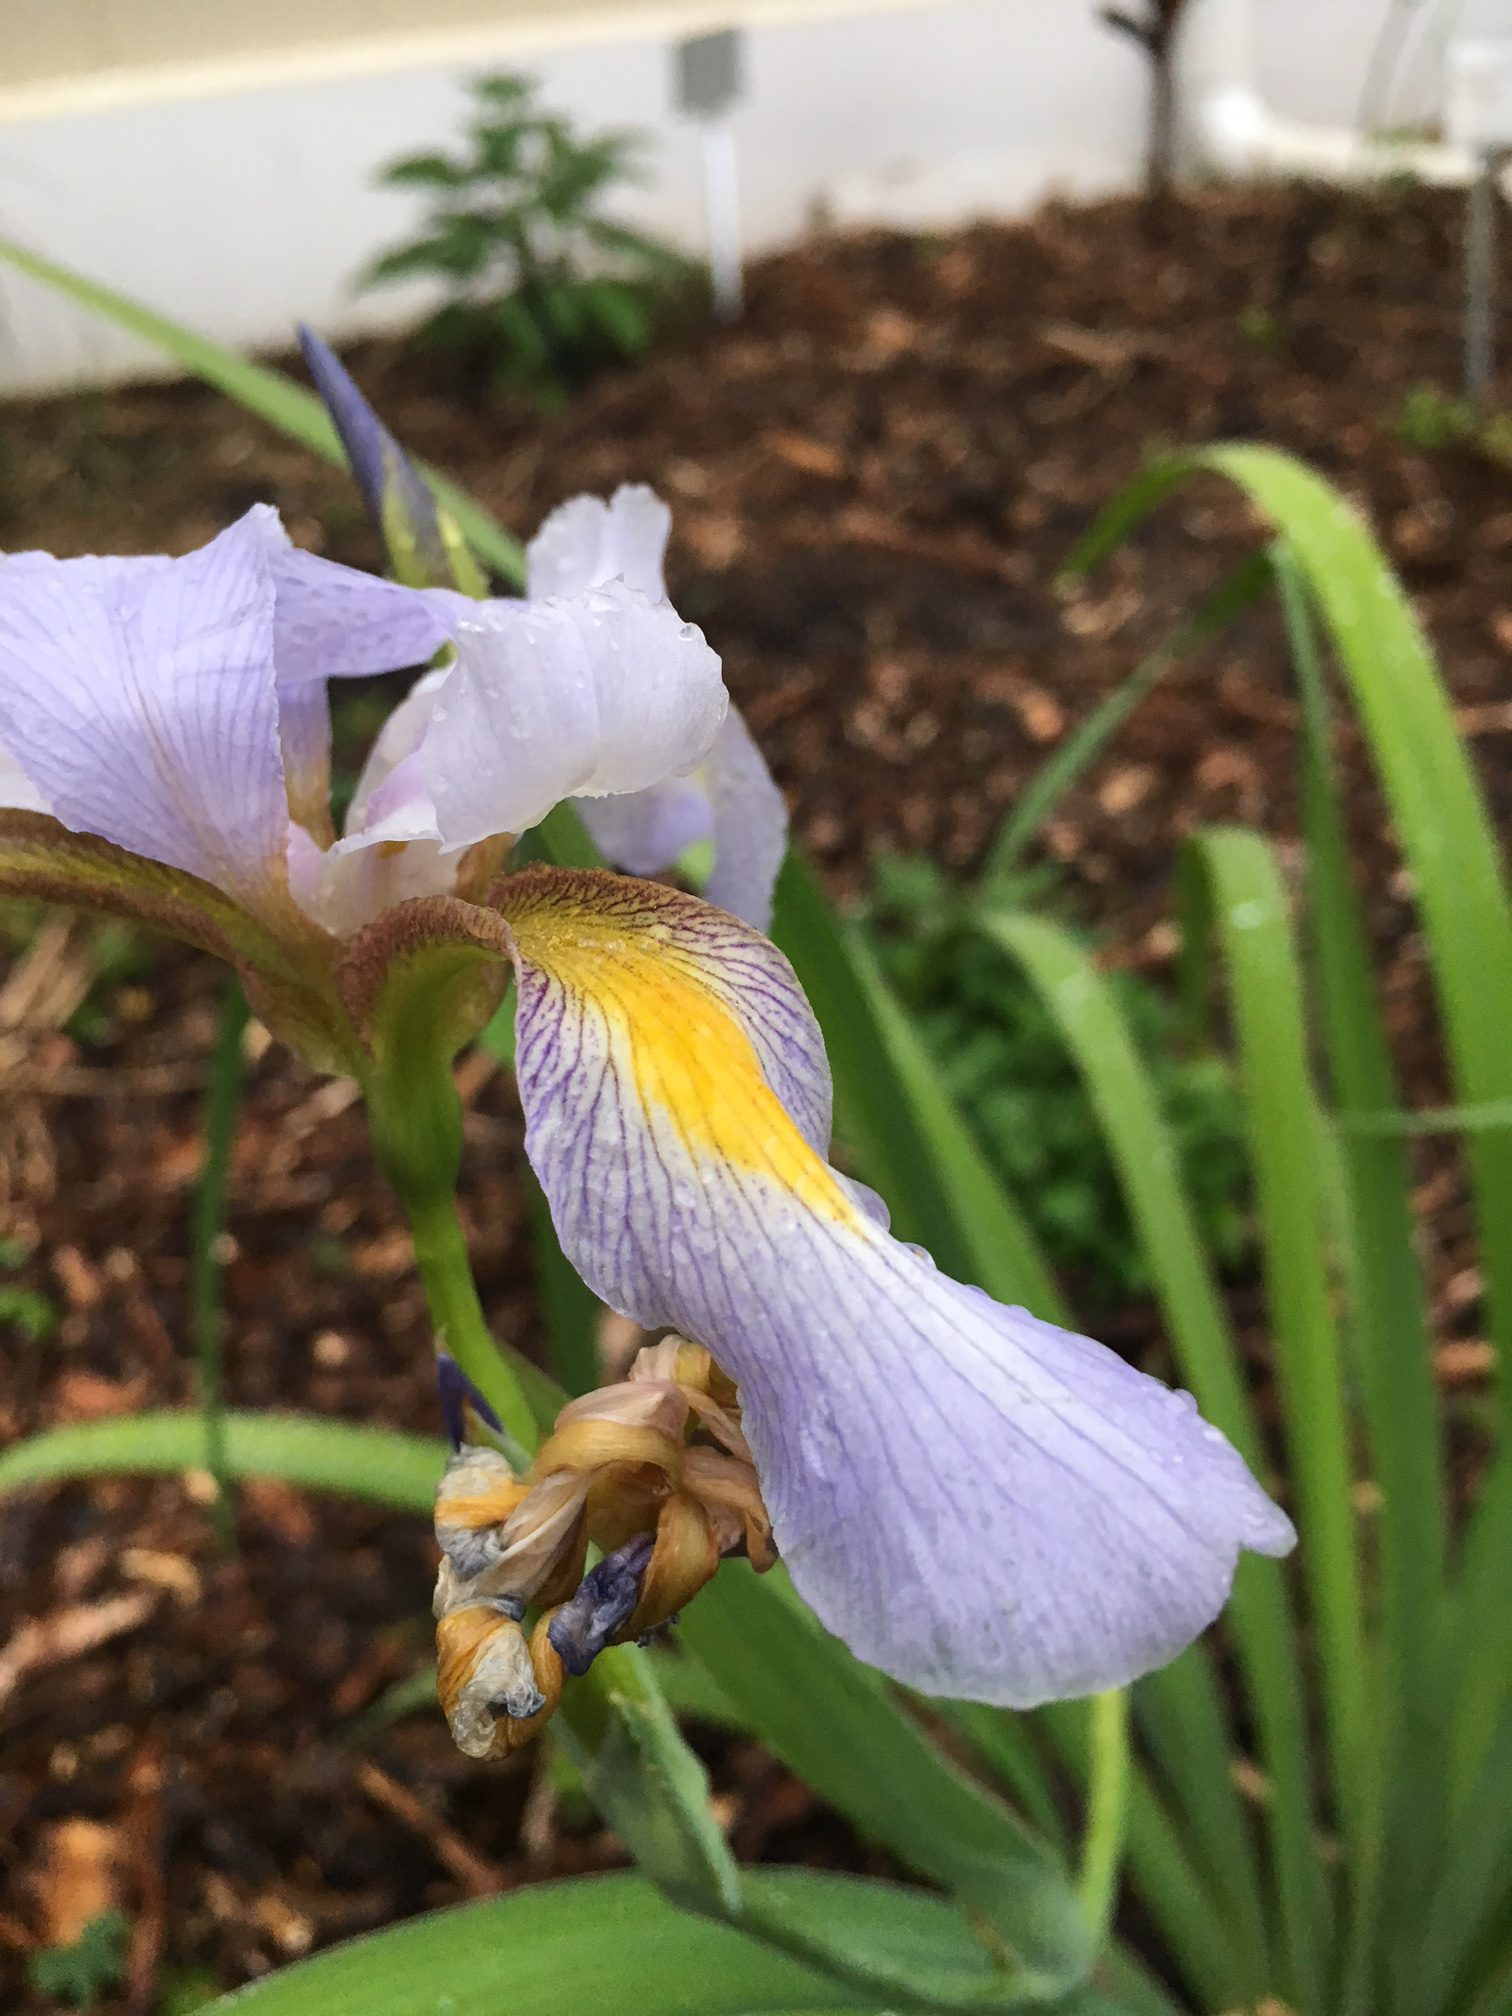 So many irises for the florida garden gardening in the panhandle iris versicolor credit mark tancig ufifas extension leon county izmirmasajfo